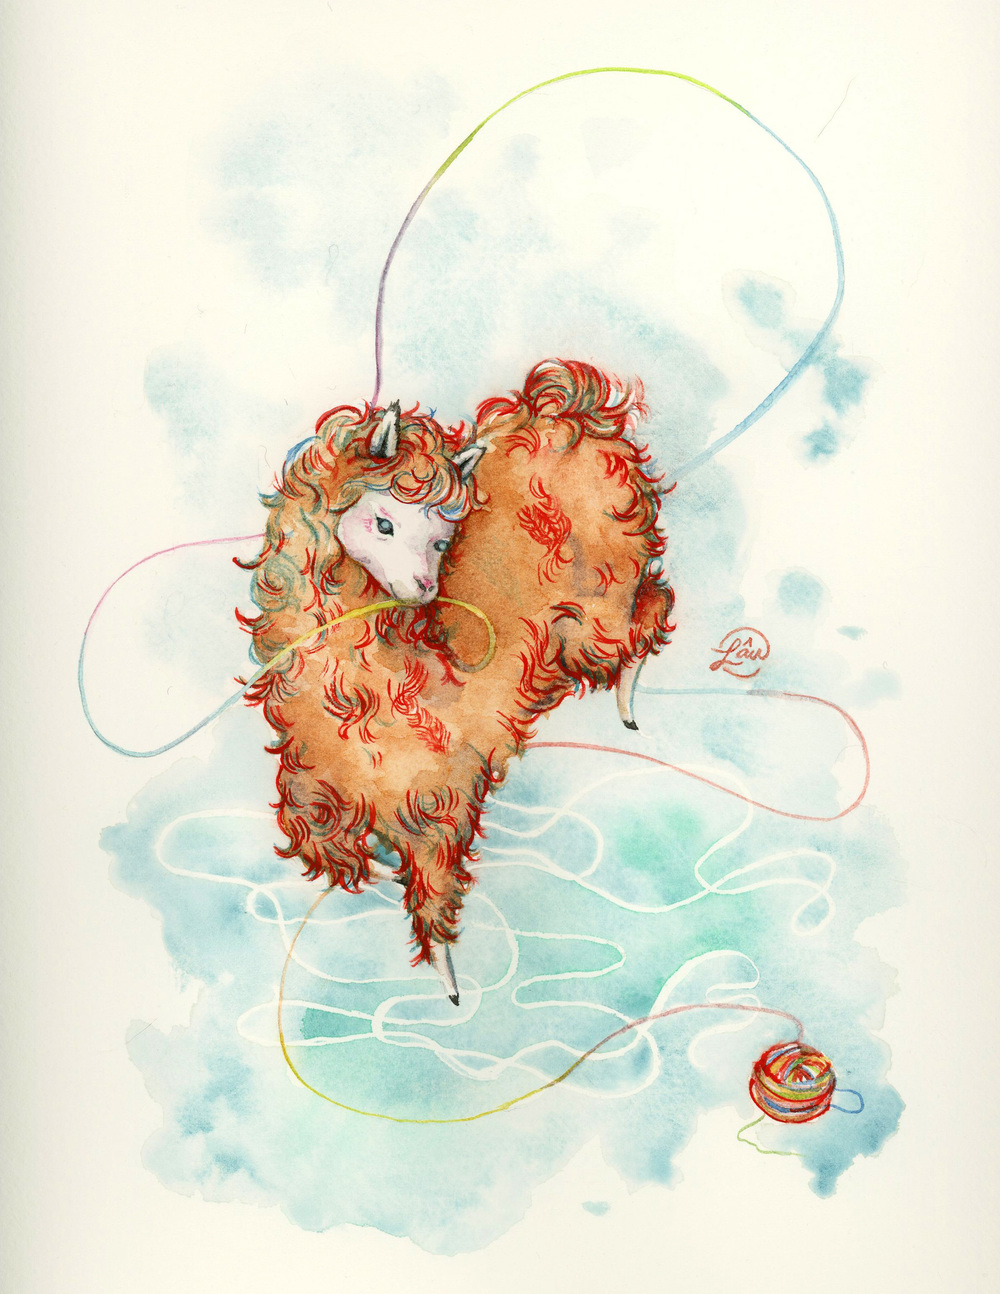 Wool Watercolor and gouache 2014 Wool of an alpaca is an easily hypoallergenic and renewable source.